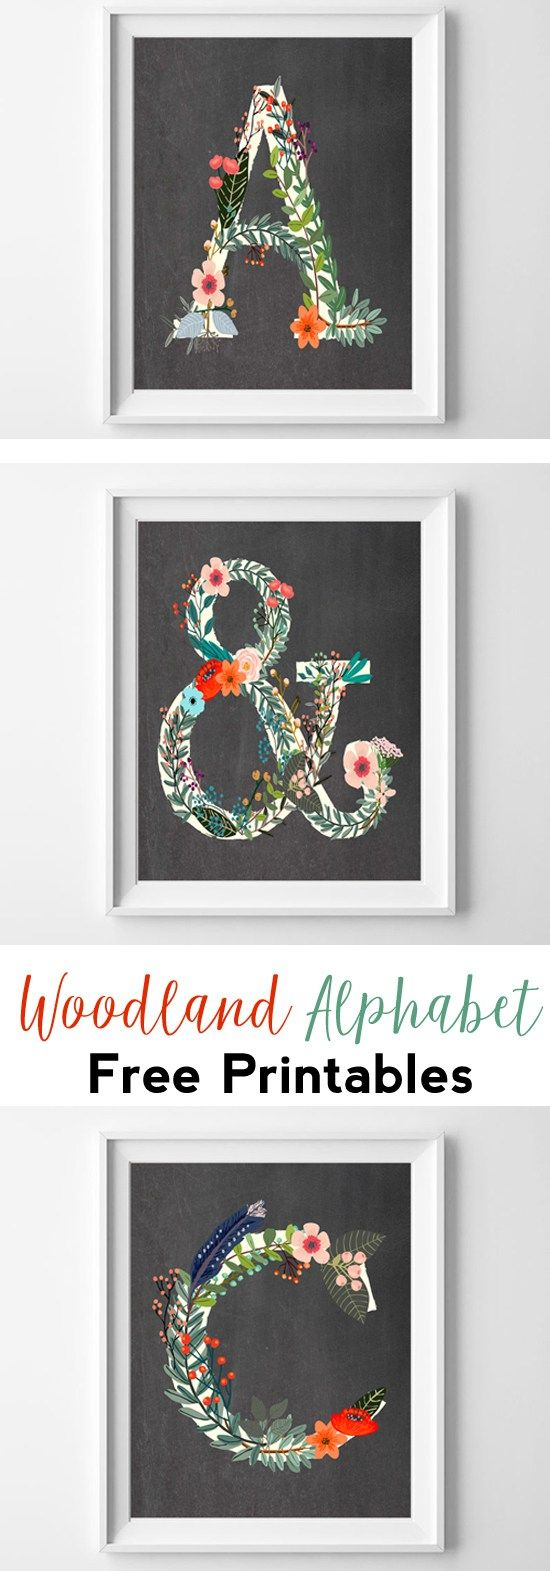 15 Best Crafts For Me Images On Pinterest Good Ideas Creative Origami Dog Diagram Group Picture Image By Tag Keywordpictures Woodland Alphabet Free Printable Wall Art Nursery Printables